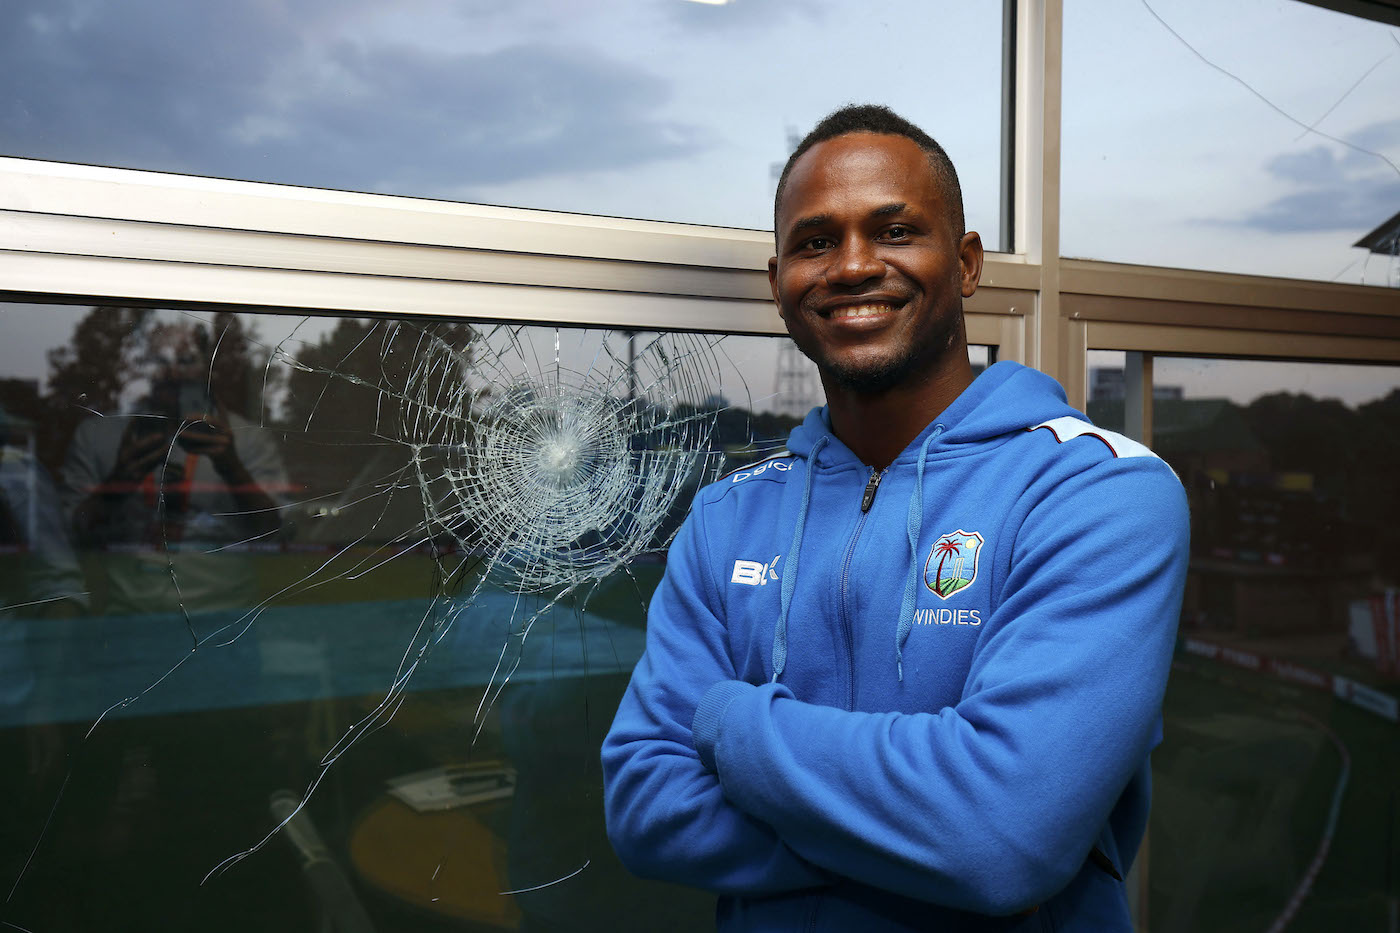 Marlon Samuels poses by the window he broke